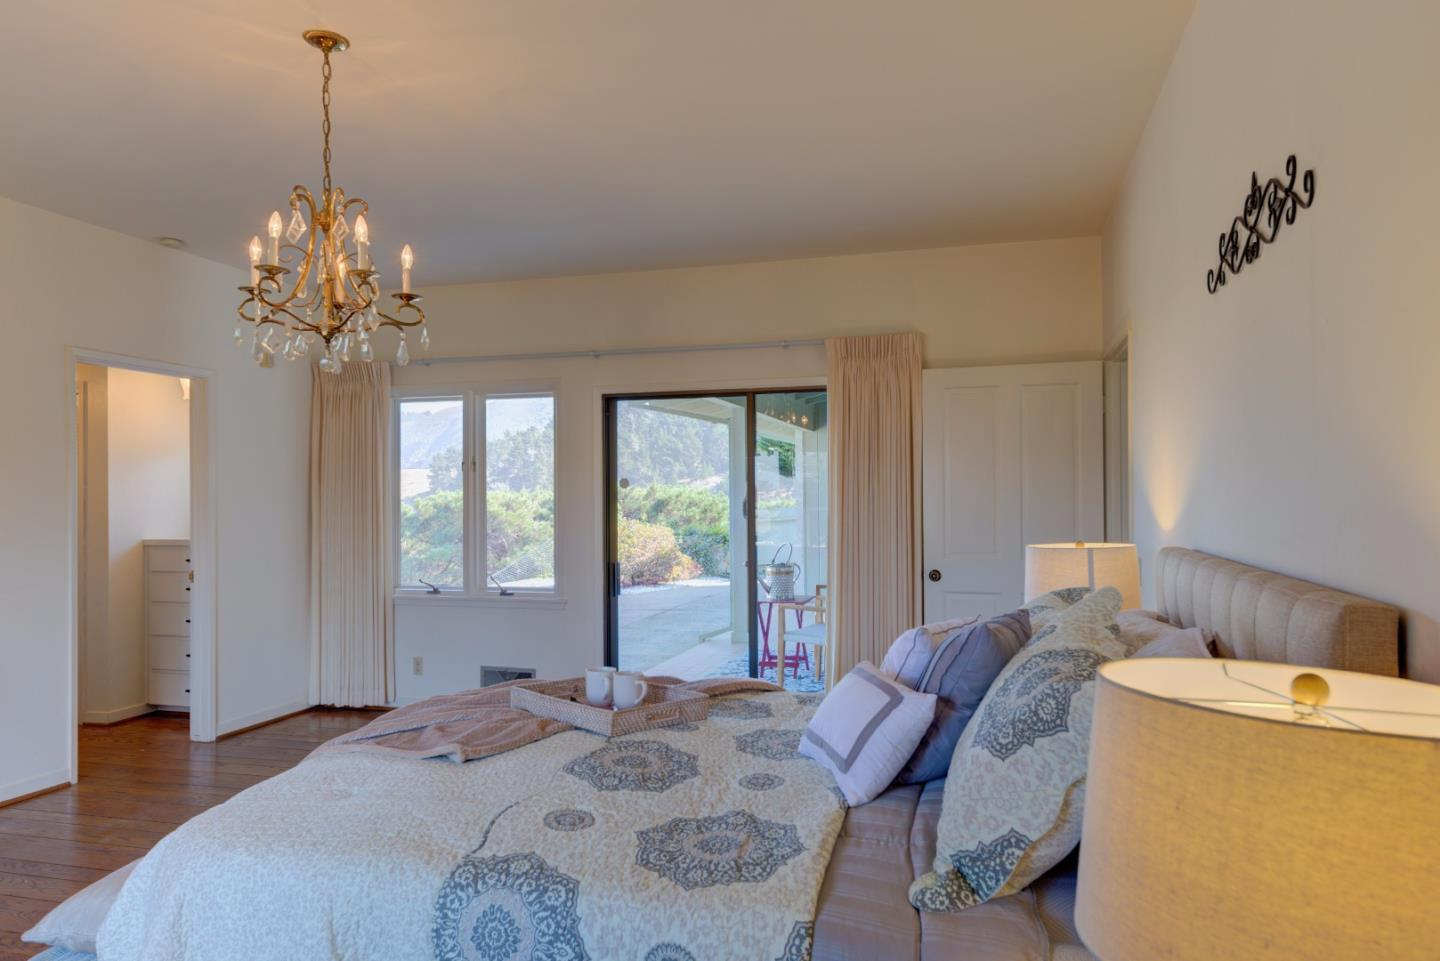 Additional photo for property listing at 2953 Cuesta Way  Carmel, カリフォルニア 93923 アメリカ合衆国